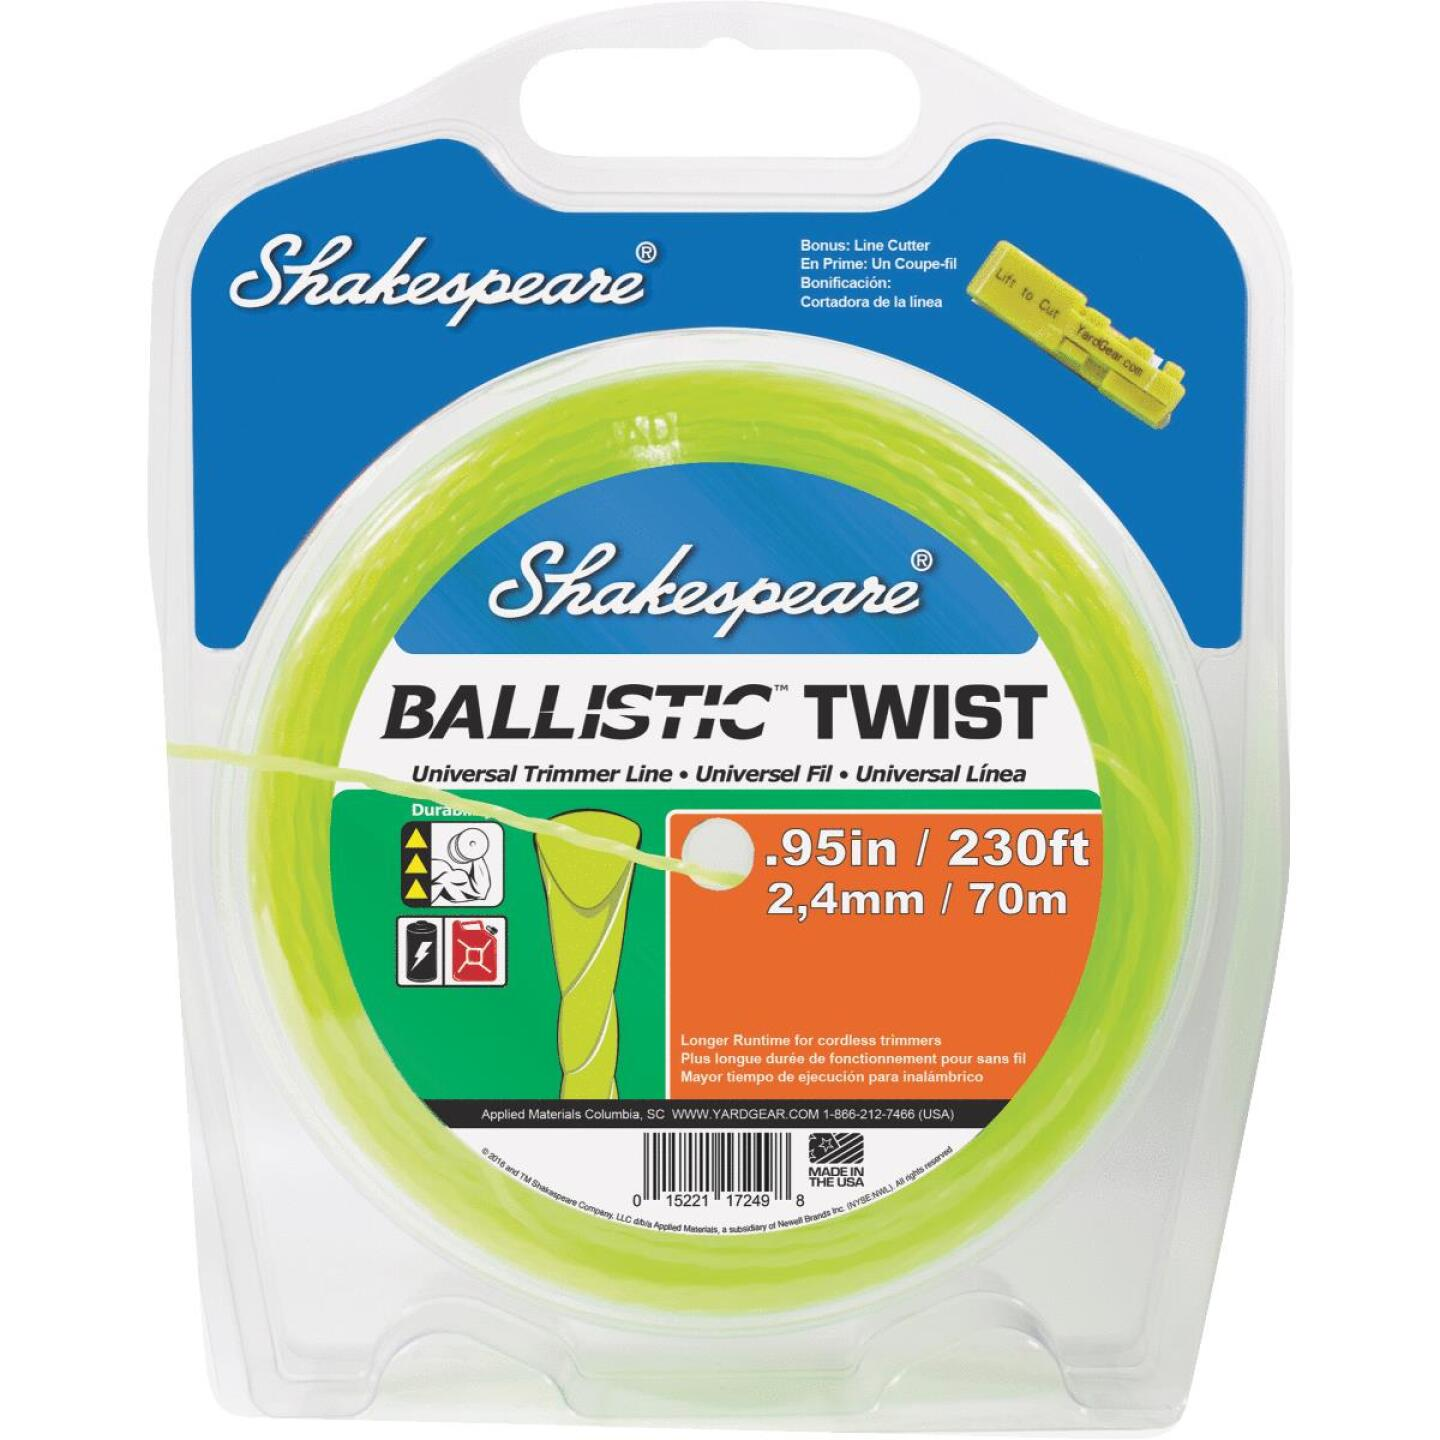 Shakespeare 0.095 In. x 230 Ft. Ballistic Twist Universal Trimmer Line Image 1